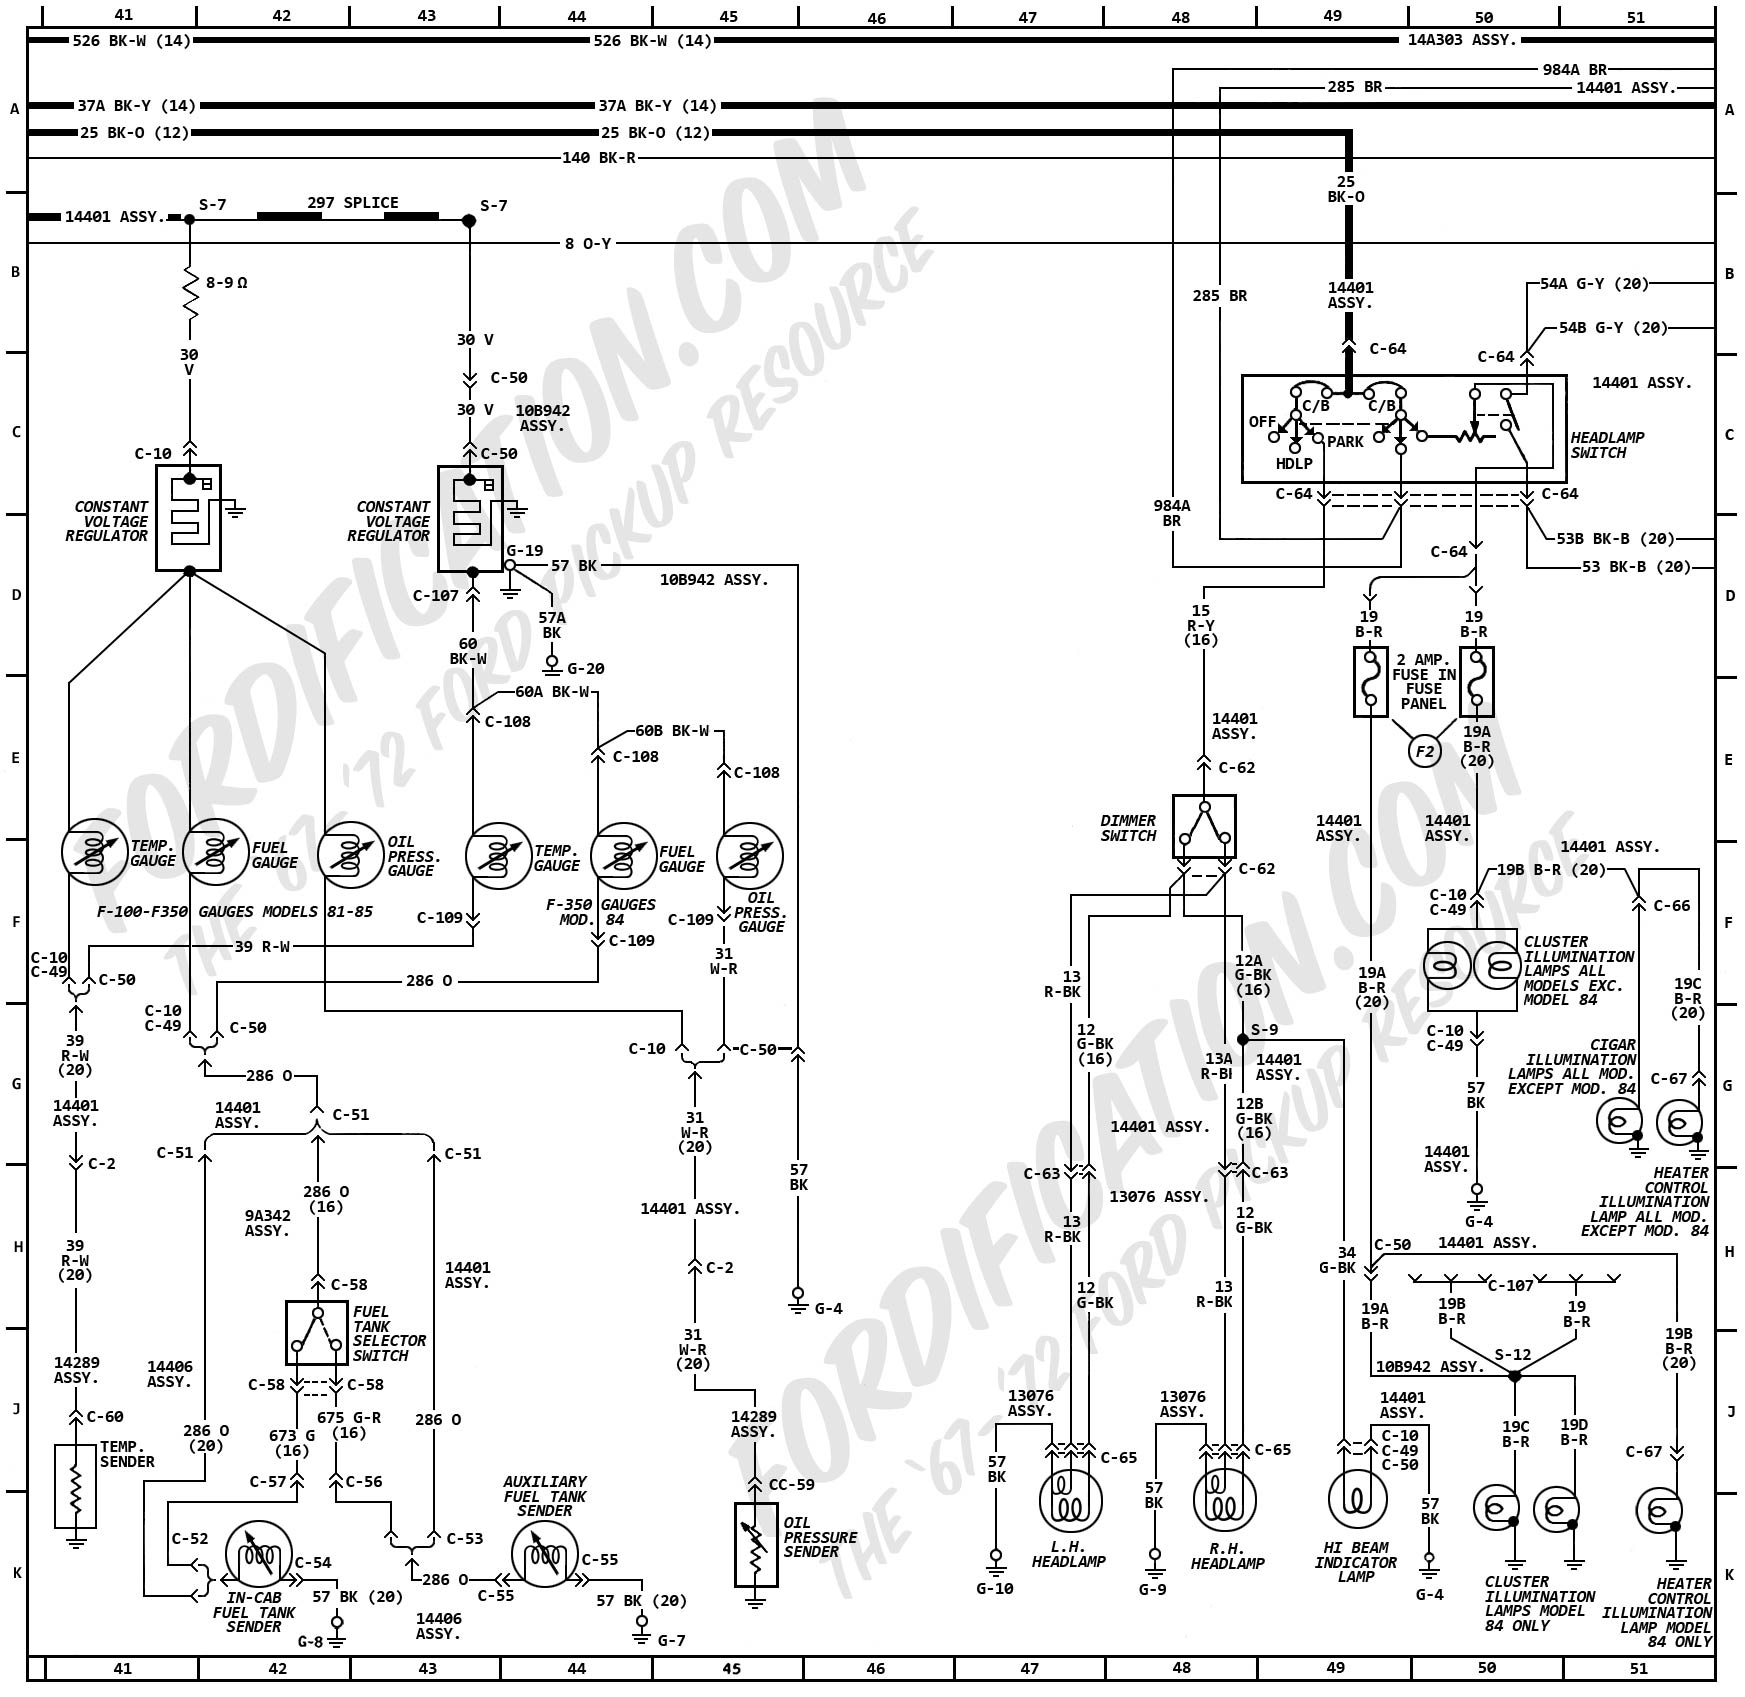 wiring diagram ford 4mb14fordown2006ford